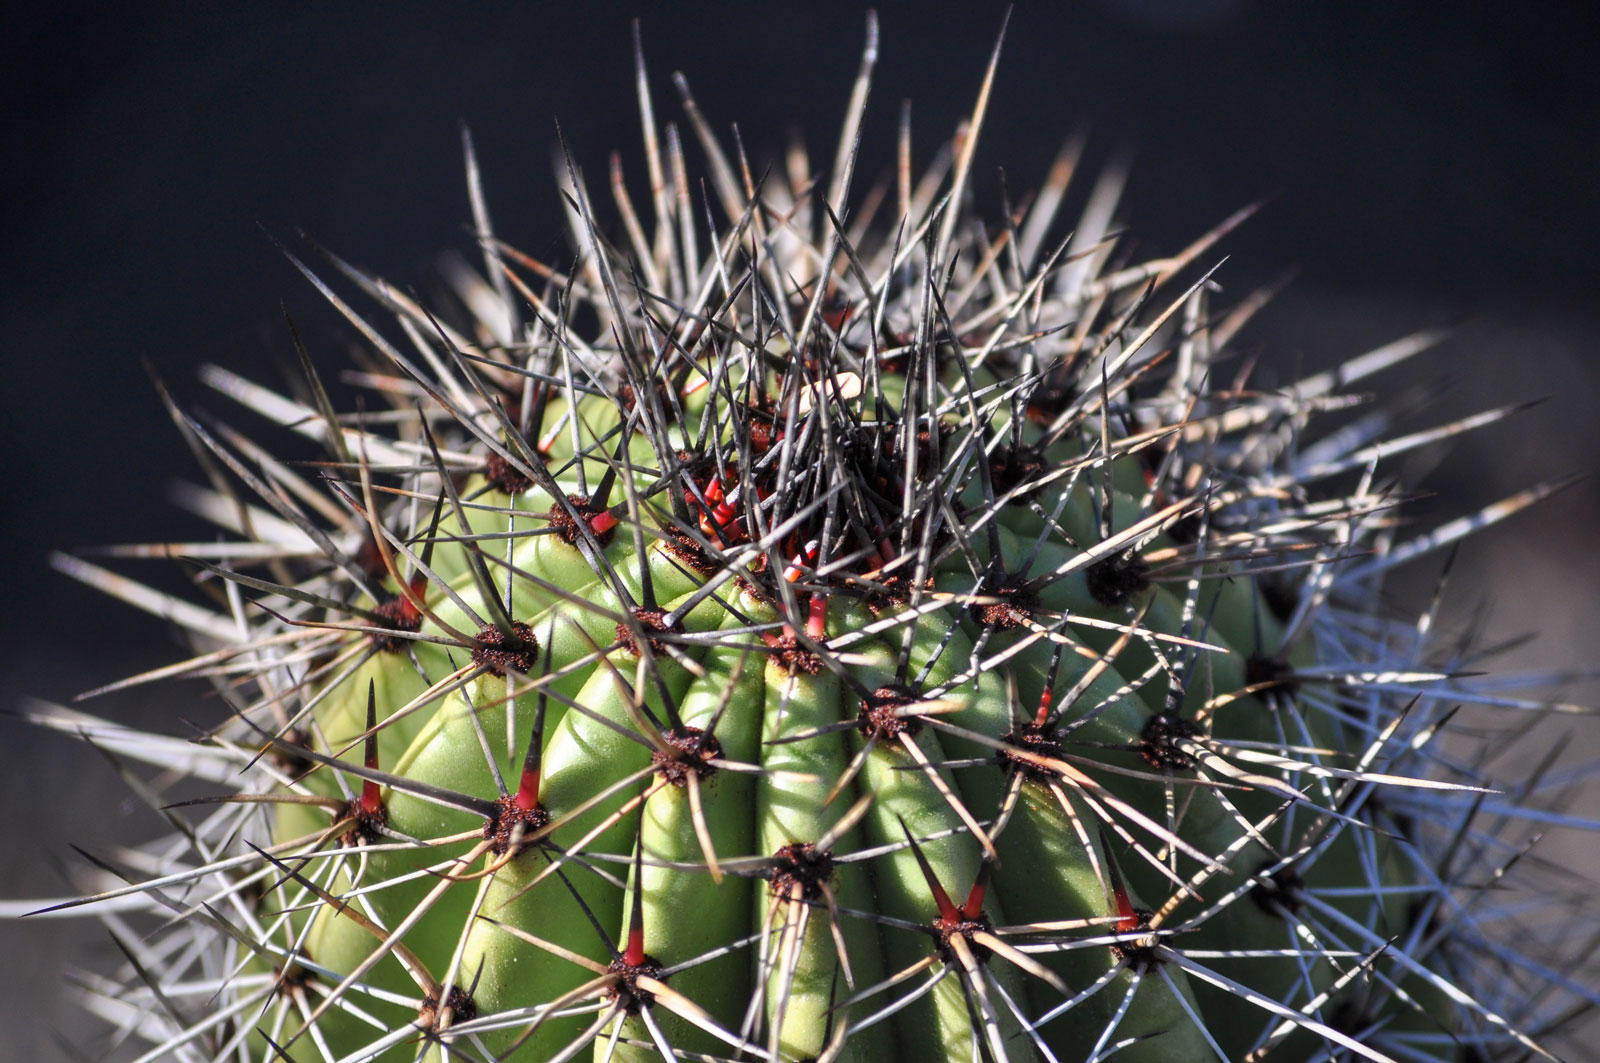 A close-up of the gray spines on top of an Organ Pipe cactus.